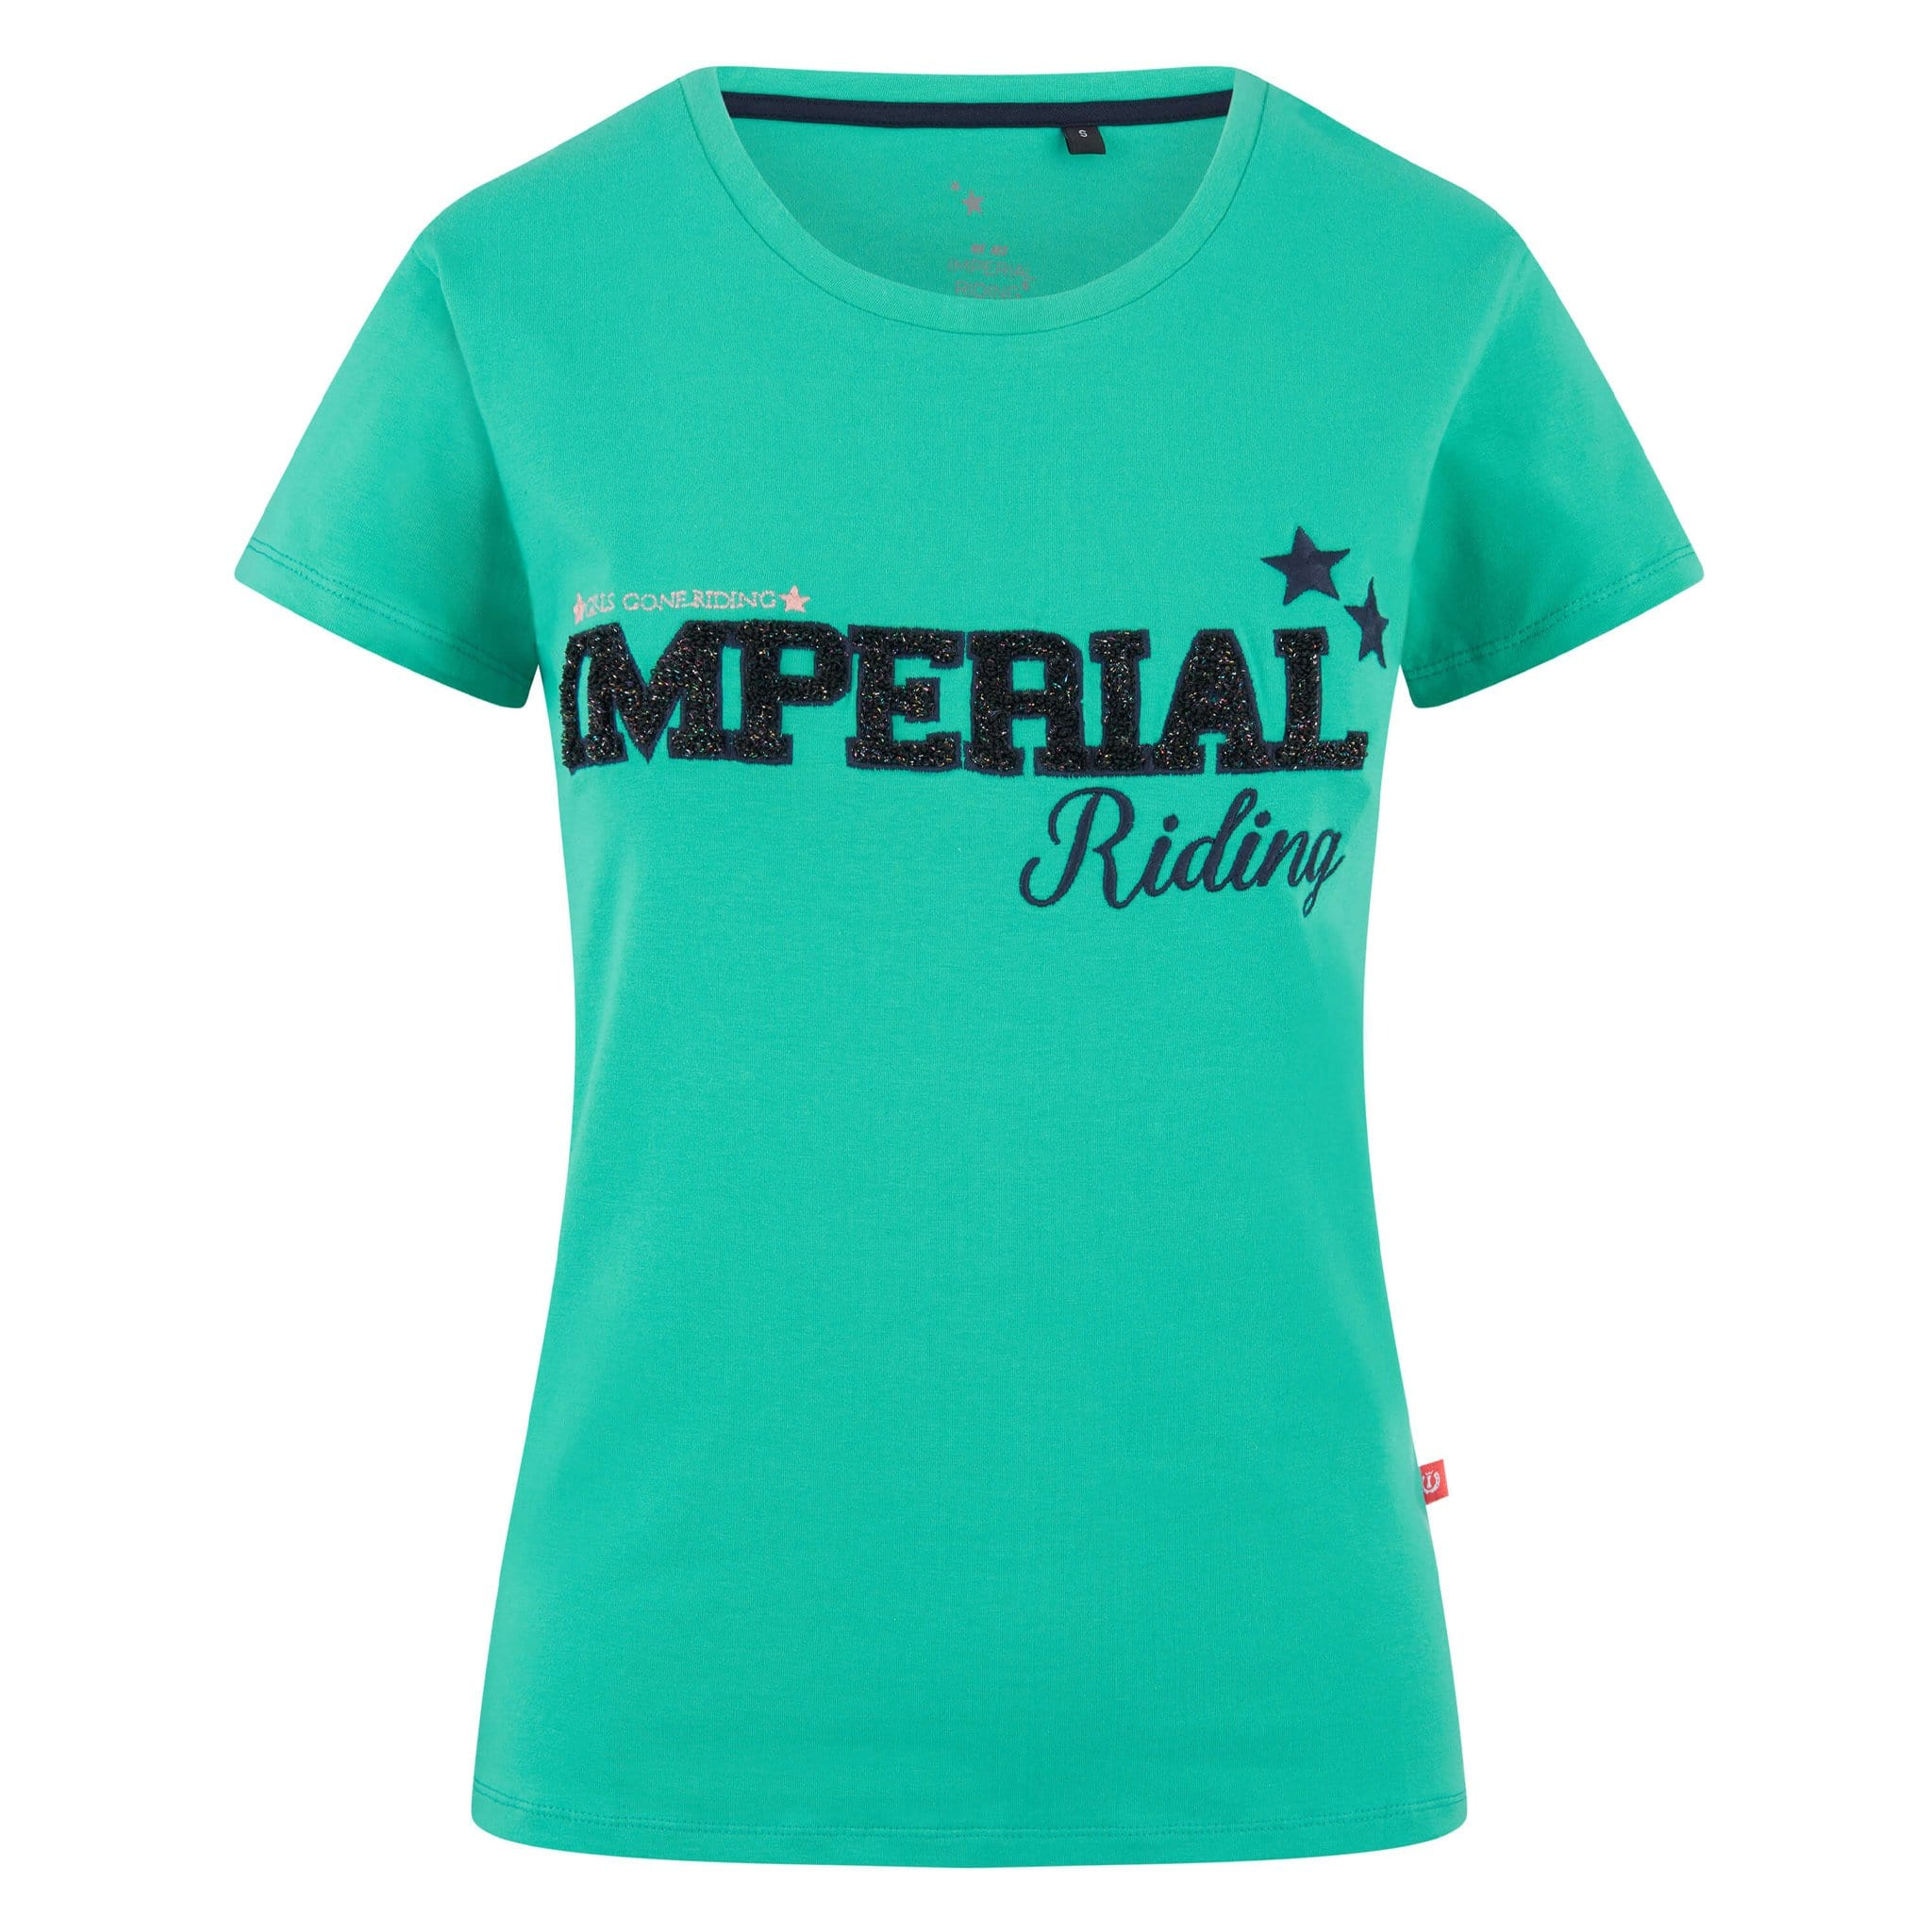 Imperial Riding Fancy 2 Short Sleeve T-Shirt KL35219001 Jade Green With Navy Embroidery